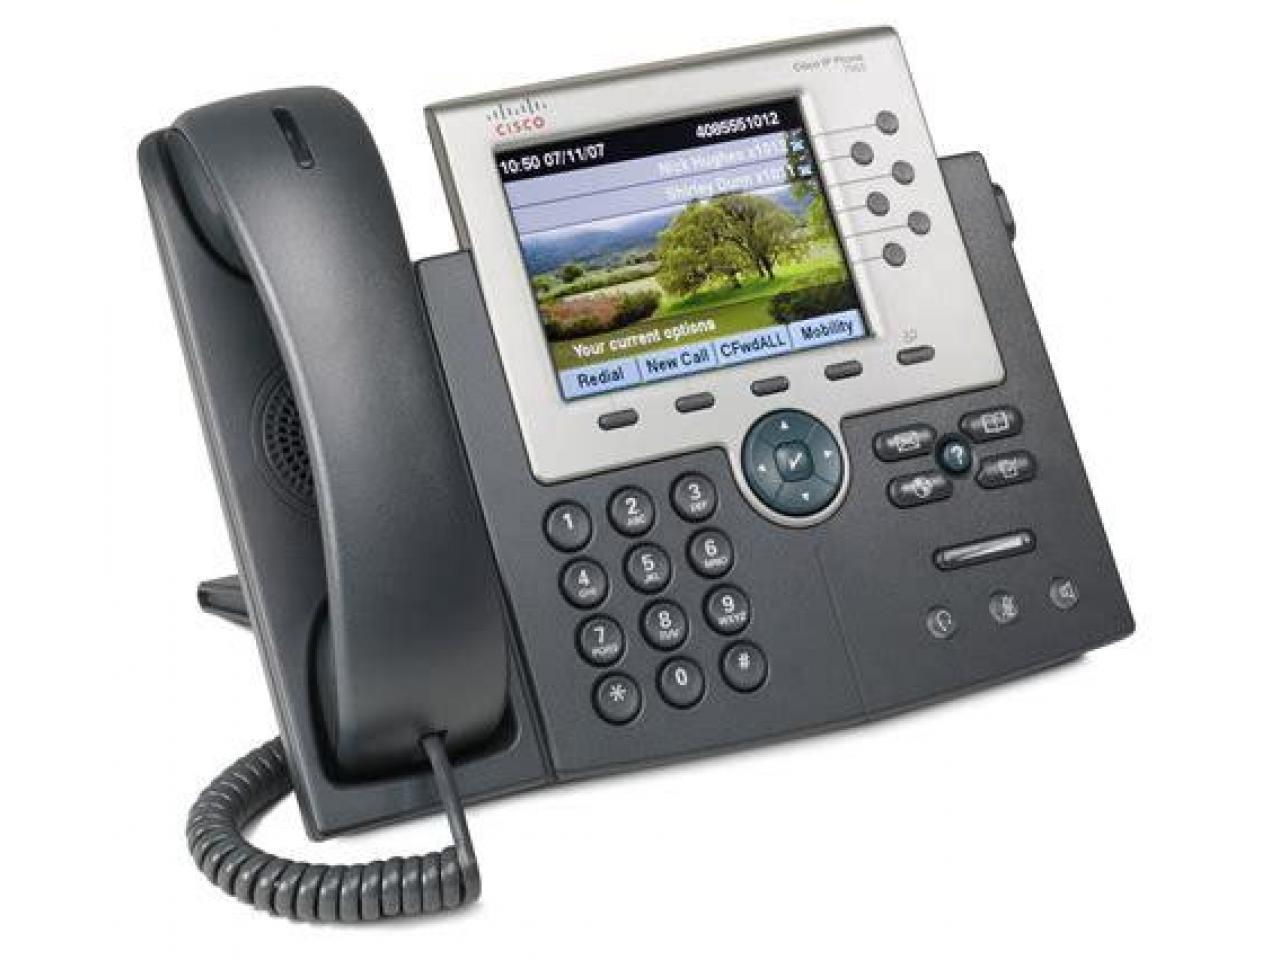 Айпи телефония (IP Phones / IP Telephony). - 1